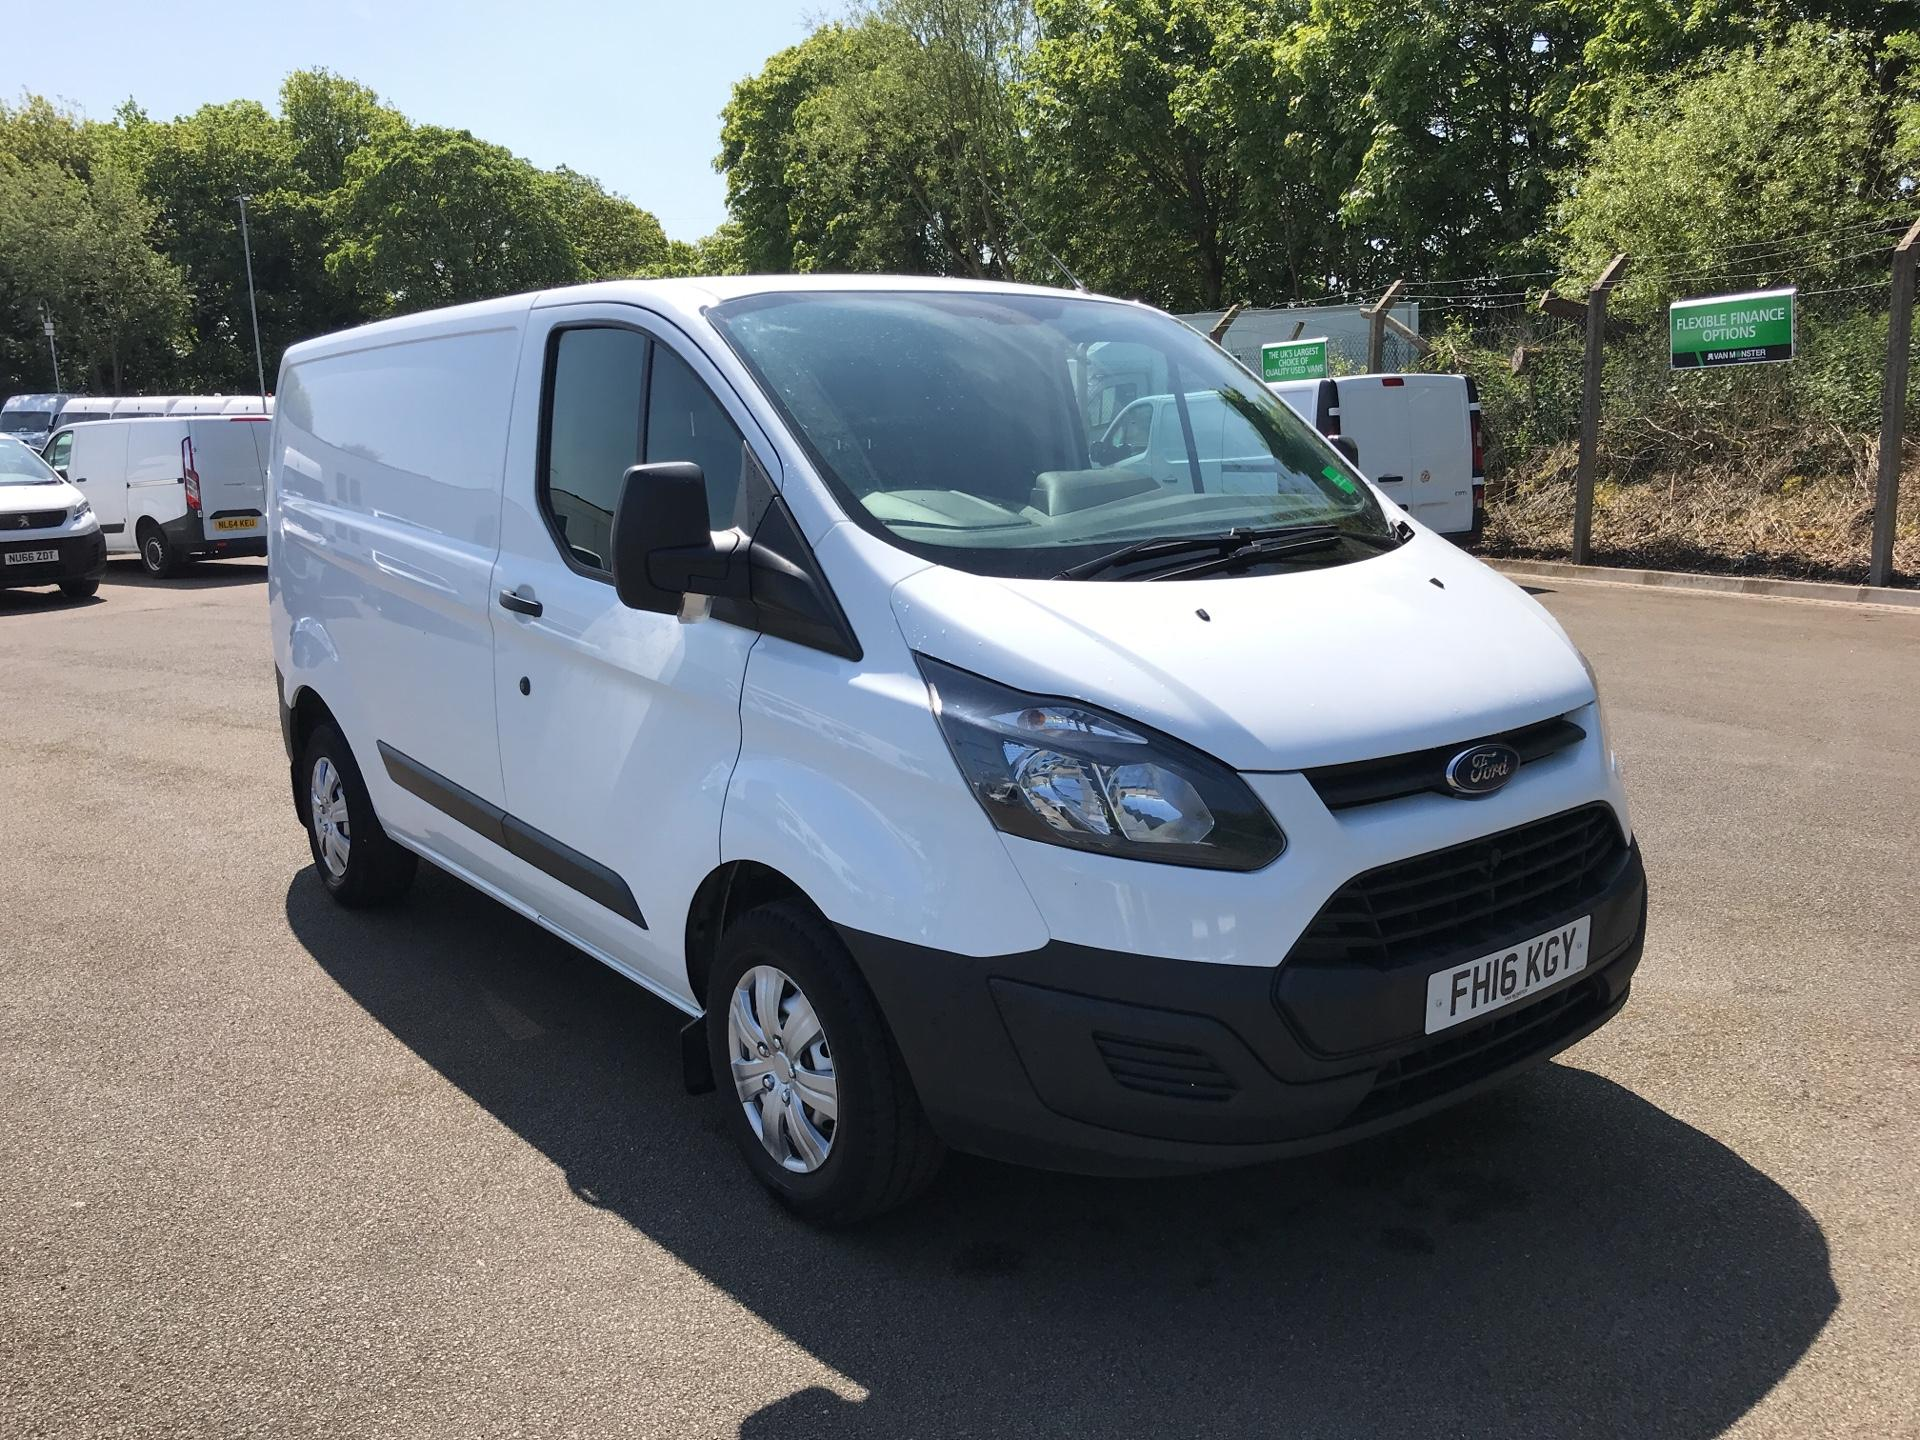 2016 Ford Transit Custom 290 L1 DIESEL FWD 2.2  TDCI 100PS LOW ROOF VAN EURO 5 (FH16KGY)